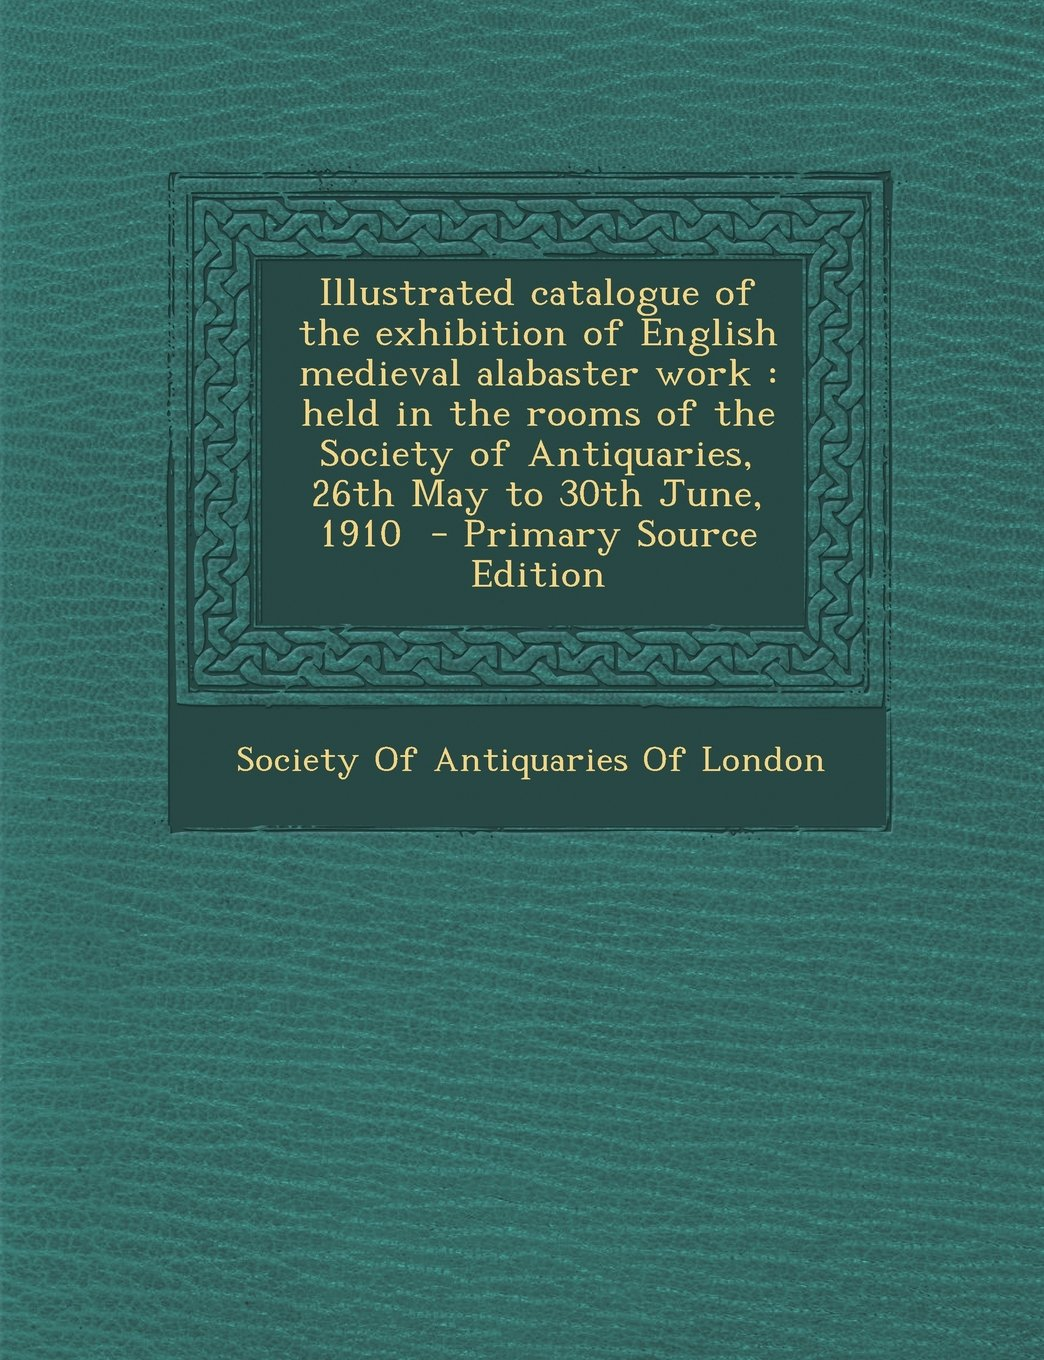 Download Illustrated catalogue of the exhibition of English medieval alabaster work: held in the rooms of the Society of Antiquaries, 26th May to 30th June, 1910 pdf epub